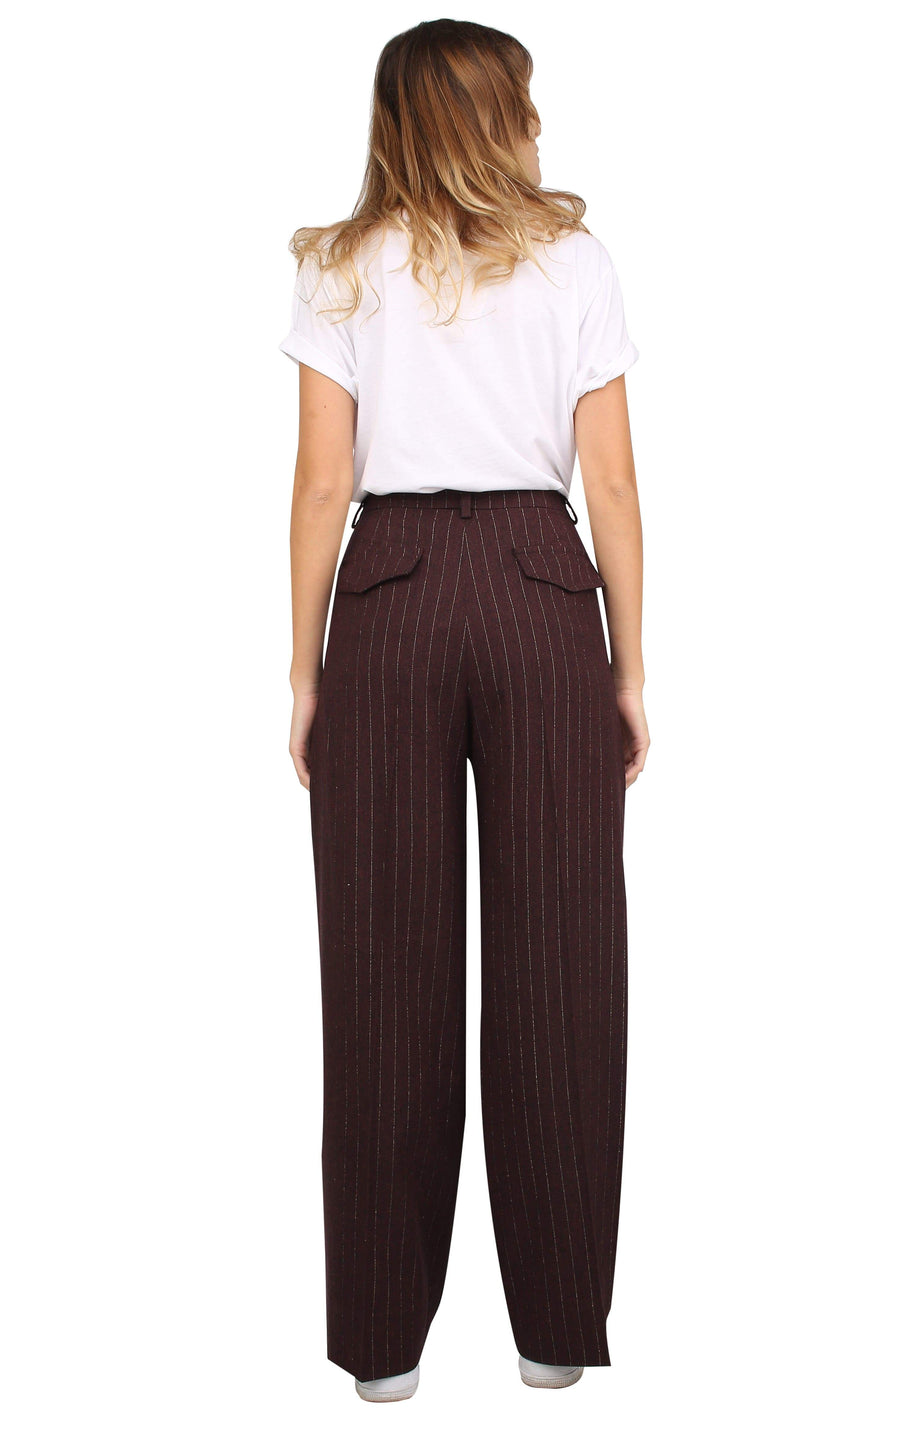 Souldaze Collection pant Isabel Pants. Surplus Wool. sustainable fashion ethical fashion